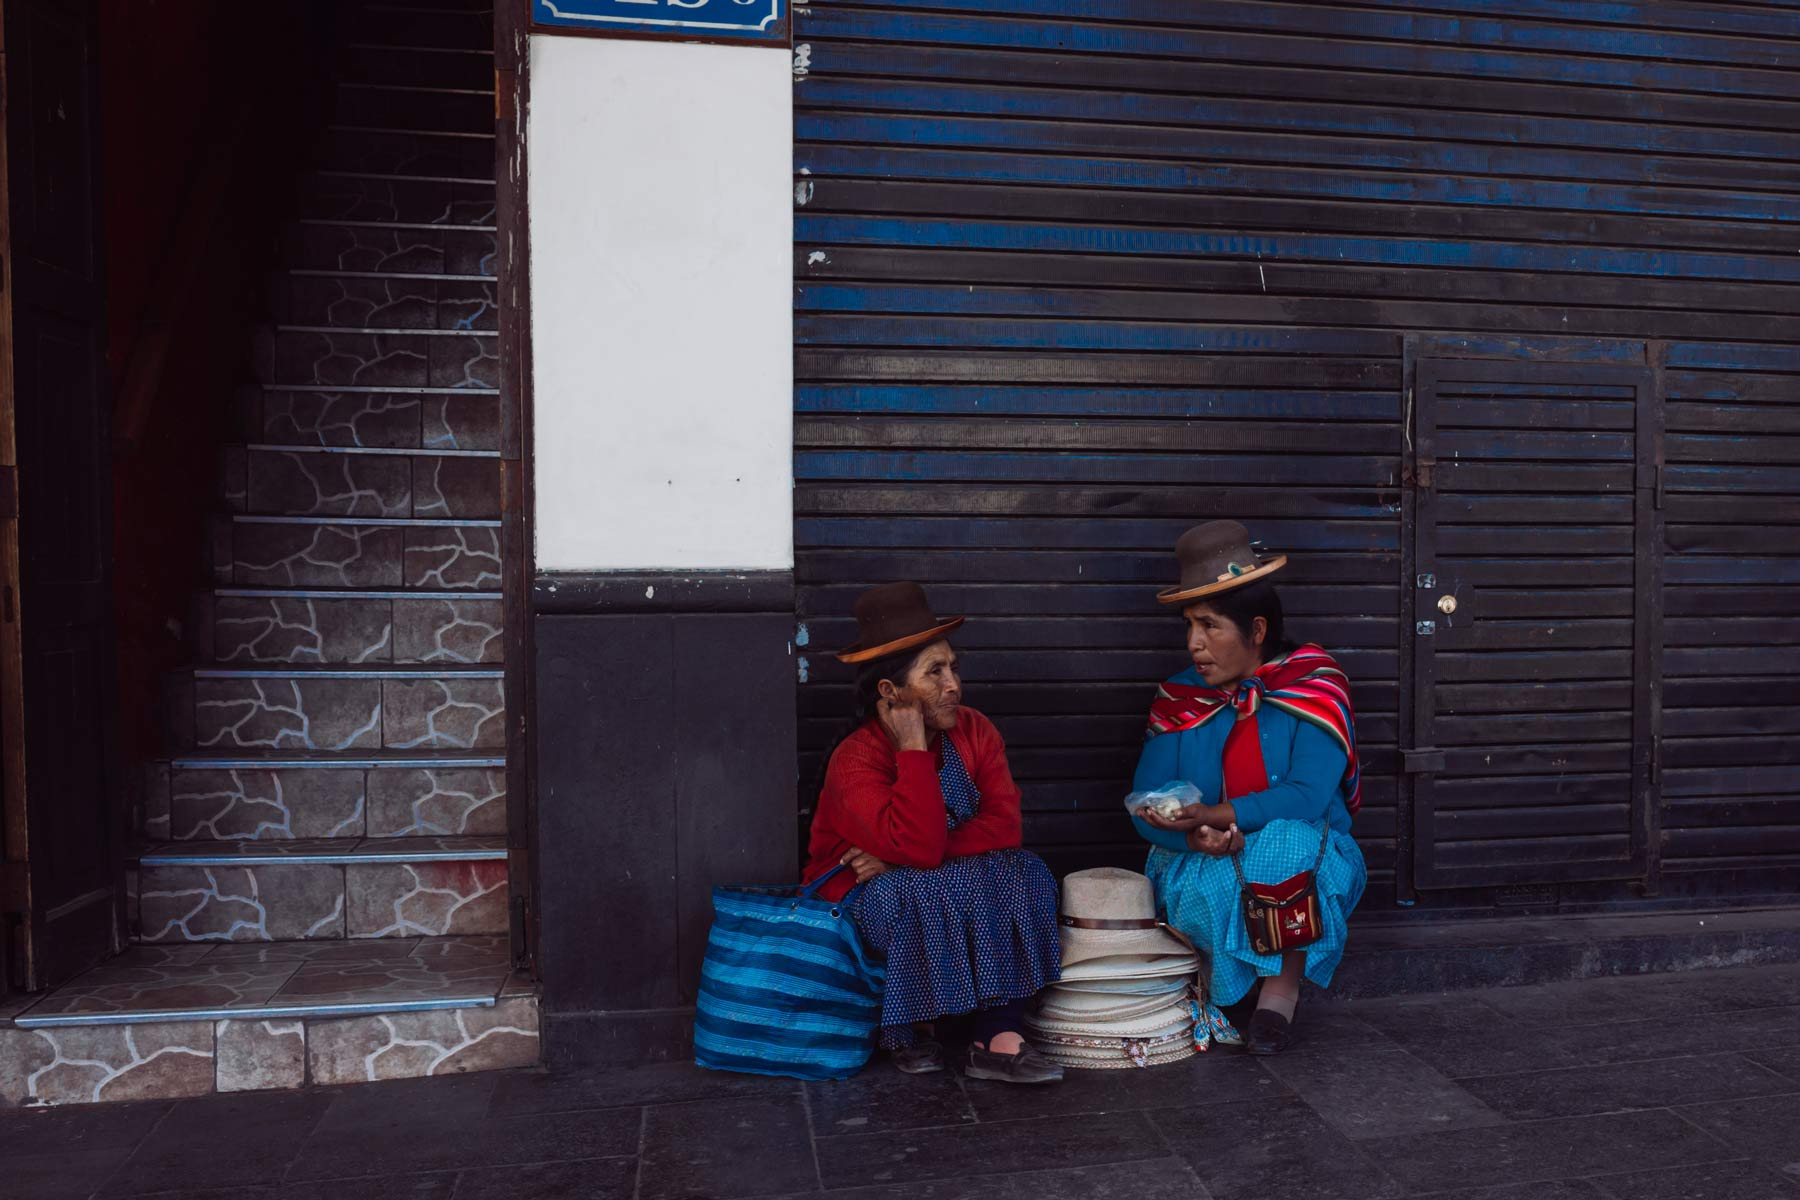 Two woman sharing food and conversation during lunchtime in Arequipa.